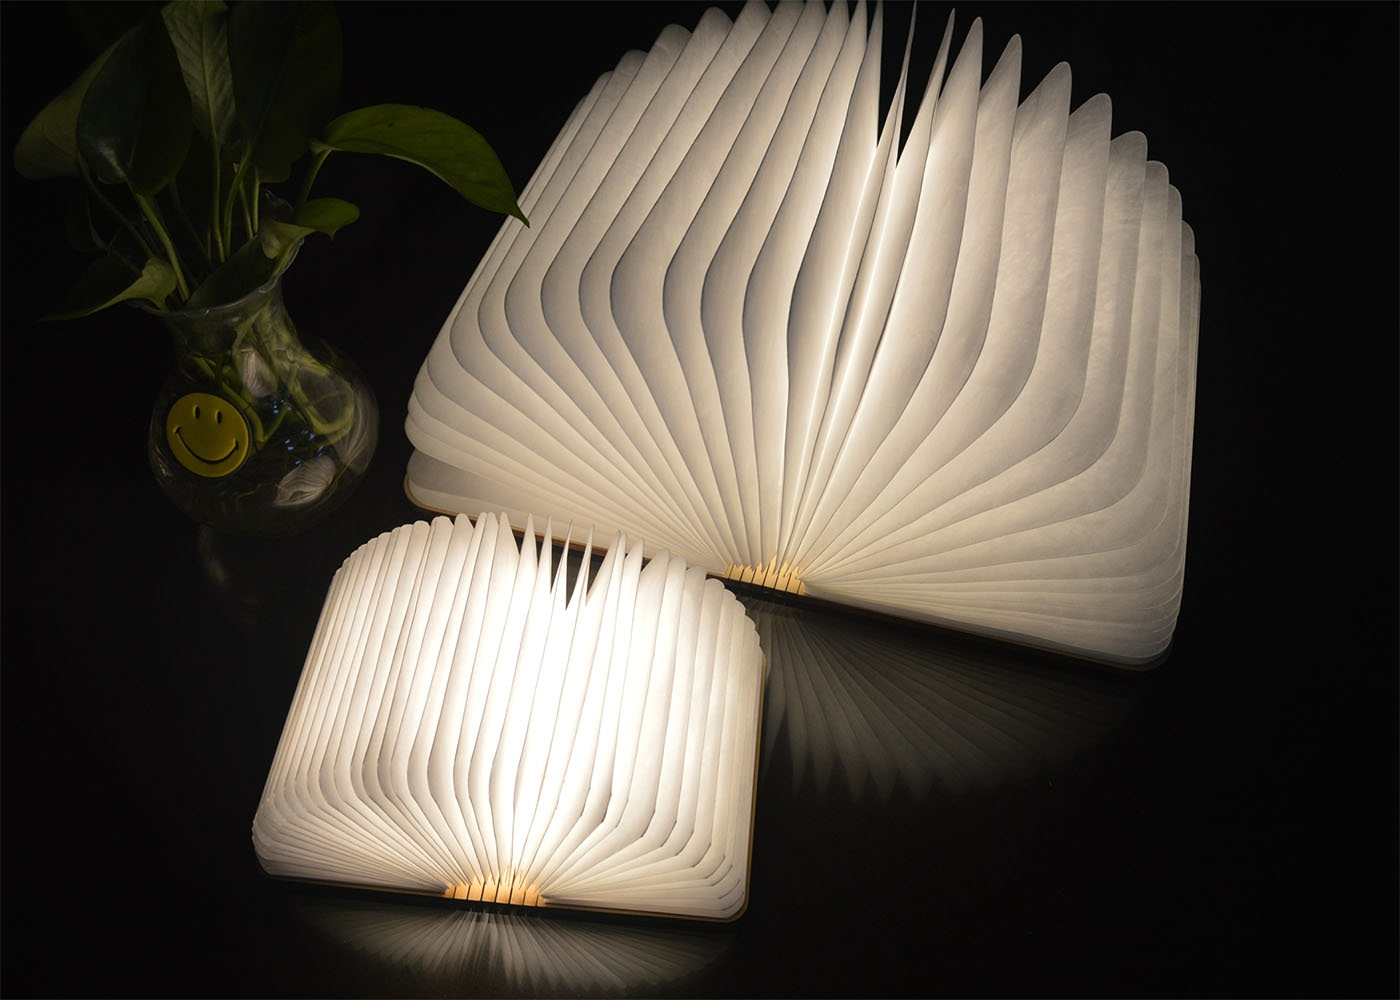 Lit Enfant Originale Lampe En Forme De Livre Design Book Light Par Gingko